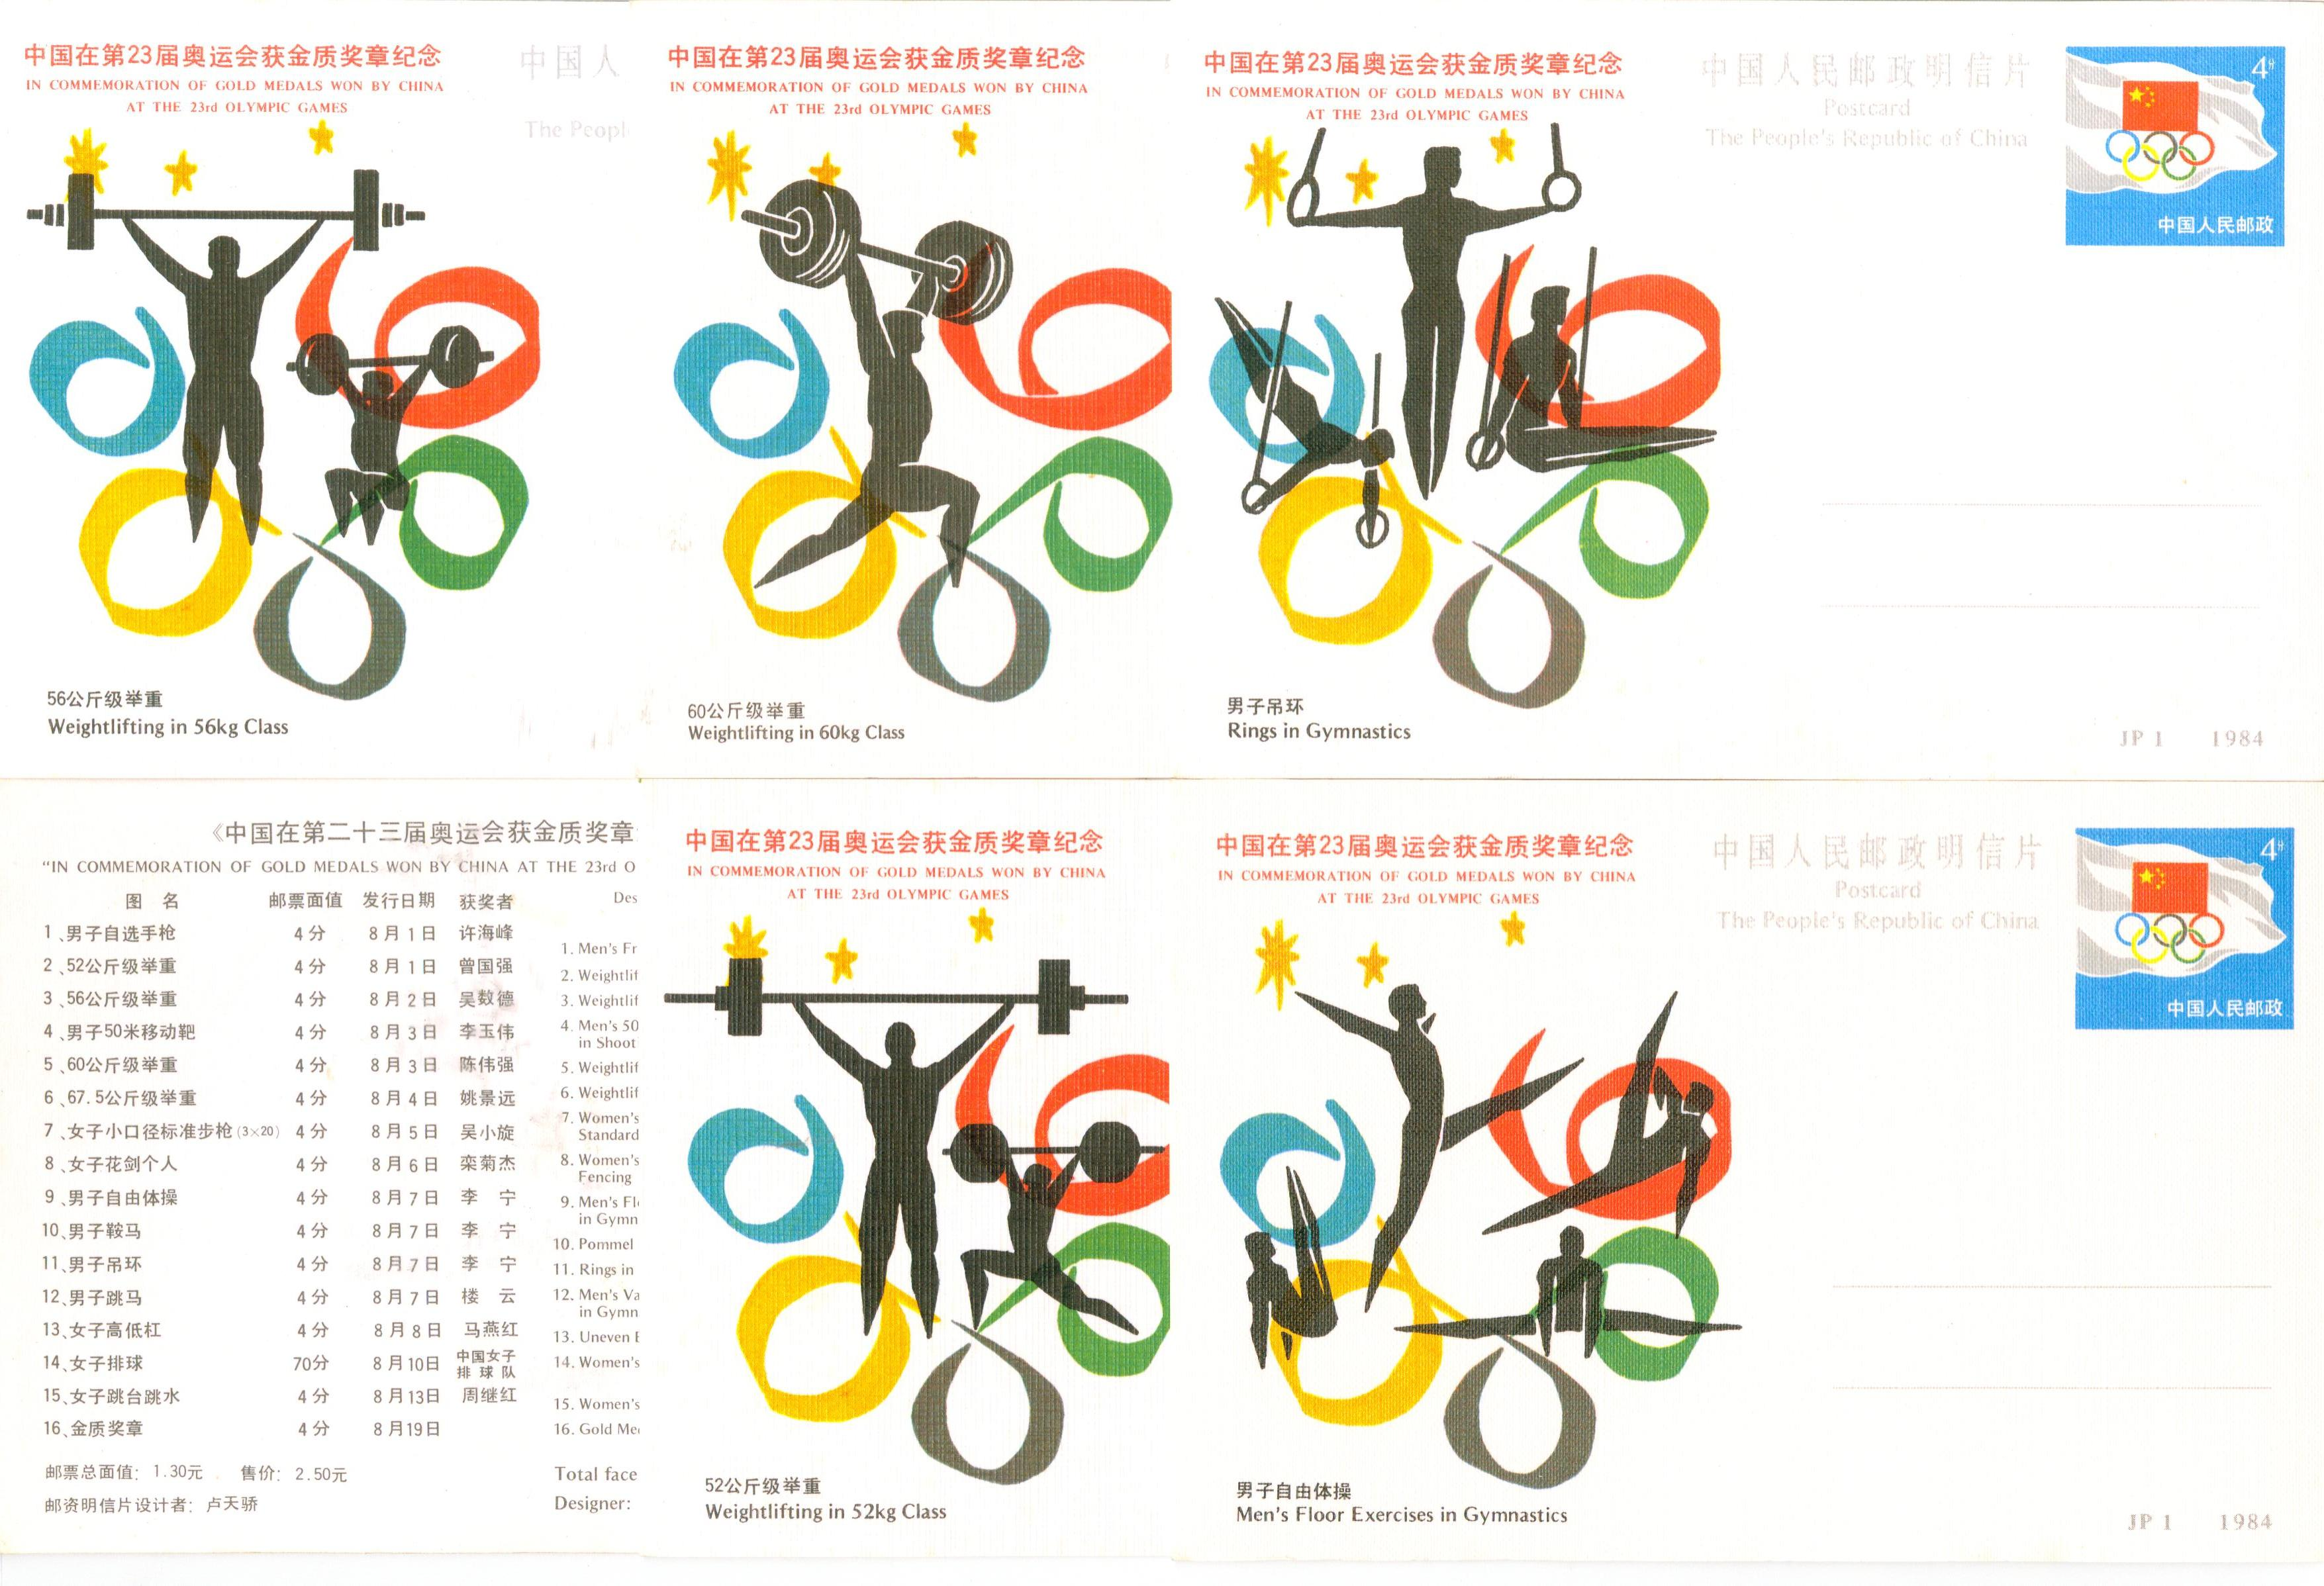 JP1, China at the 23th Olympic Games 1984 (P.R.China First Postal Cards)